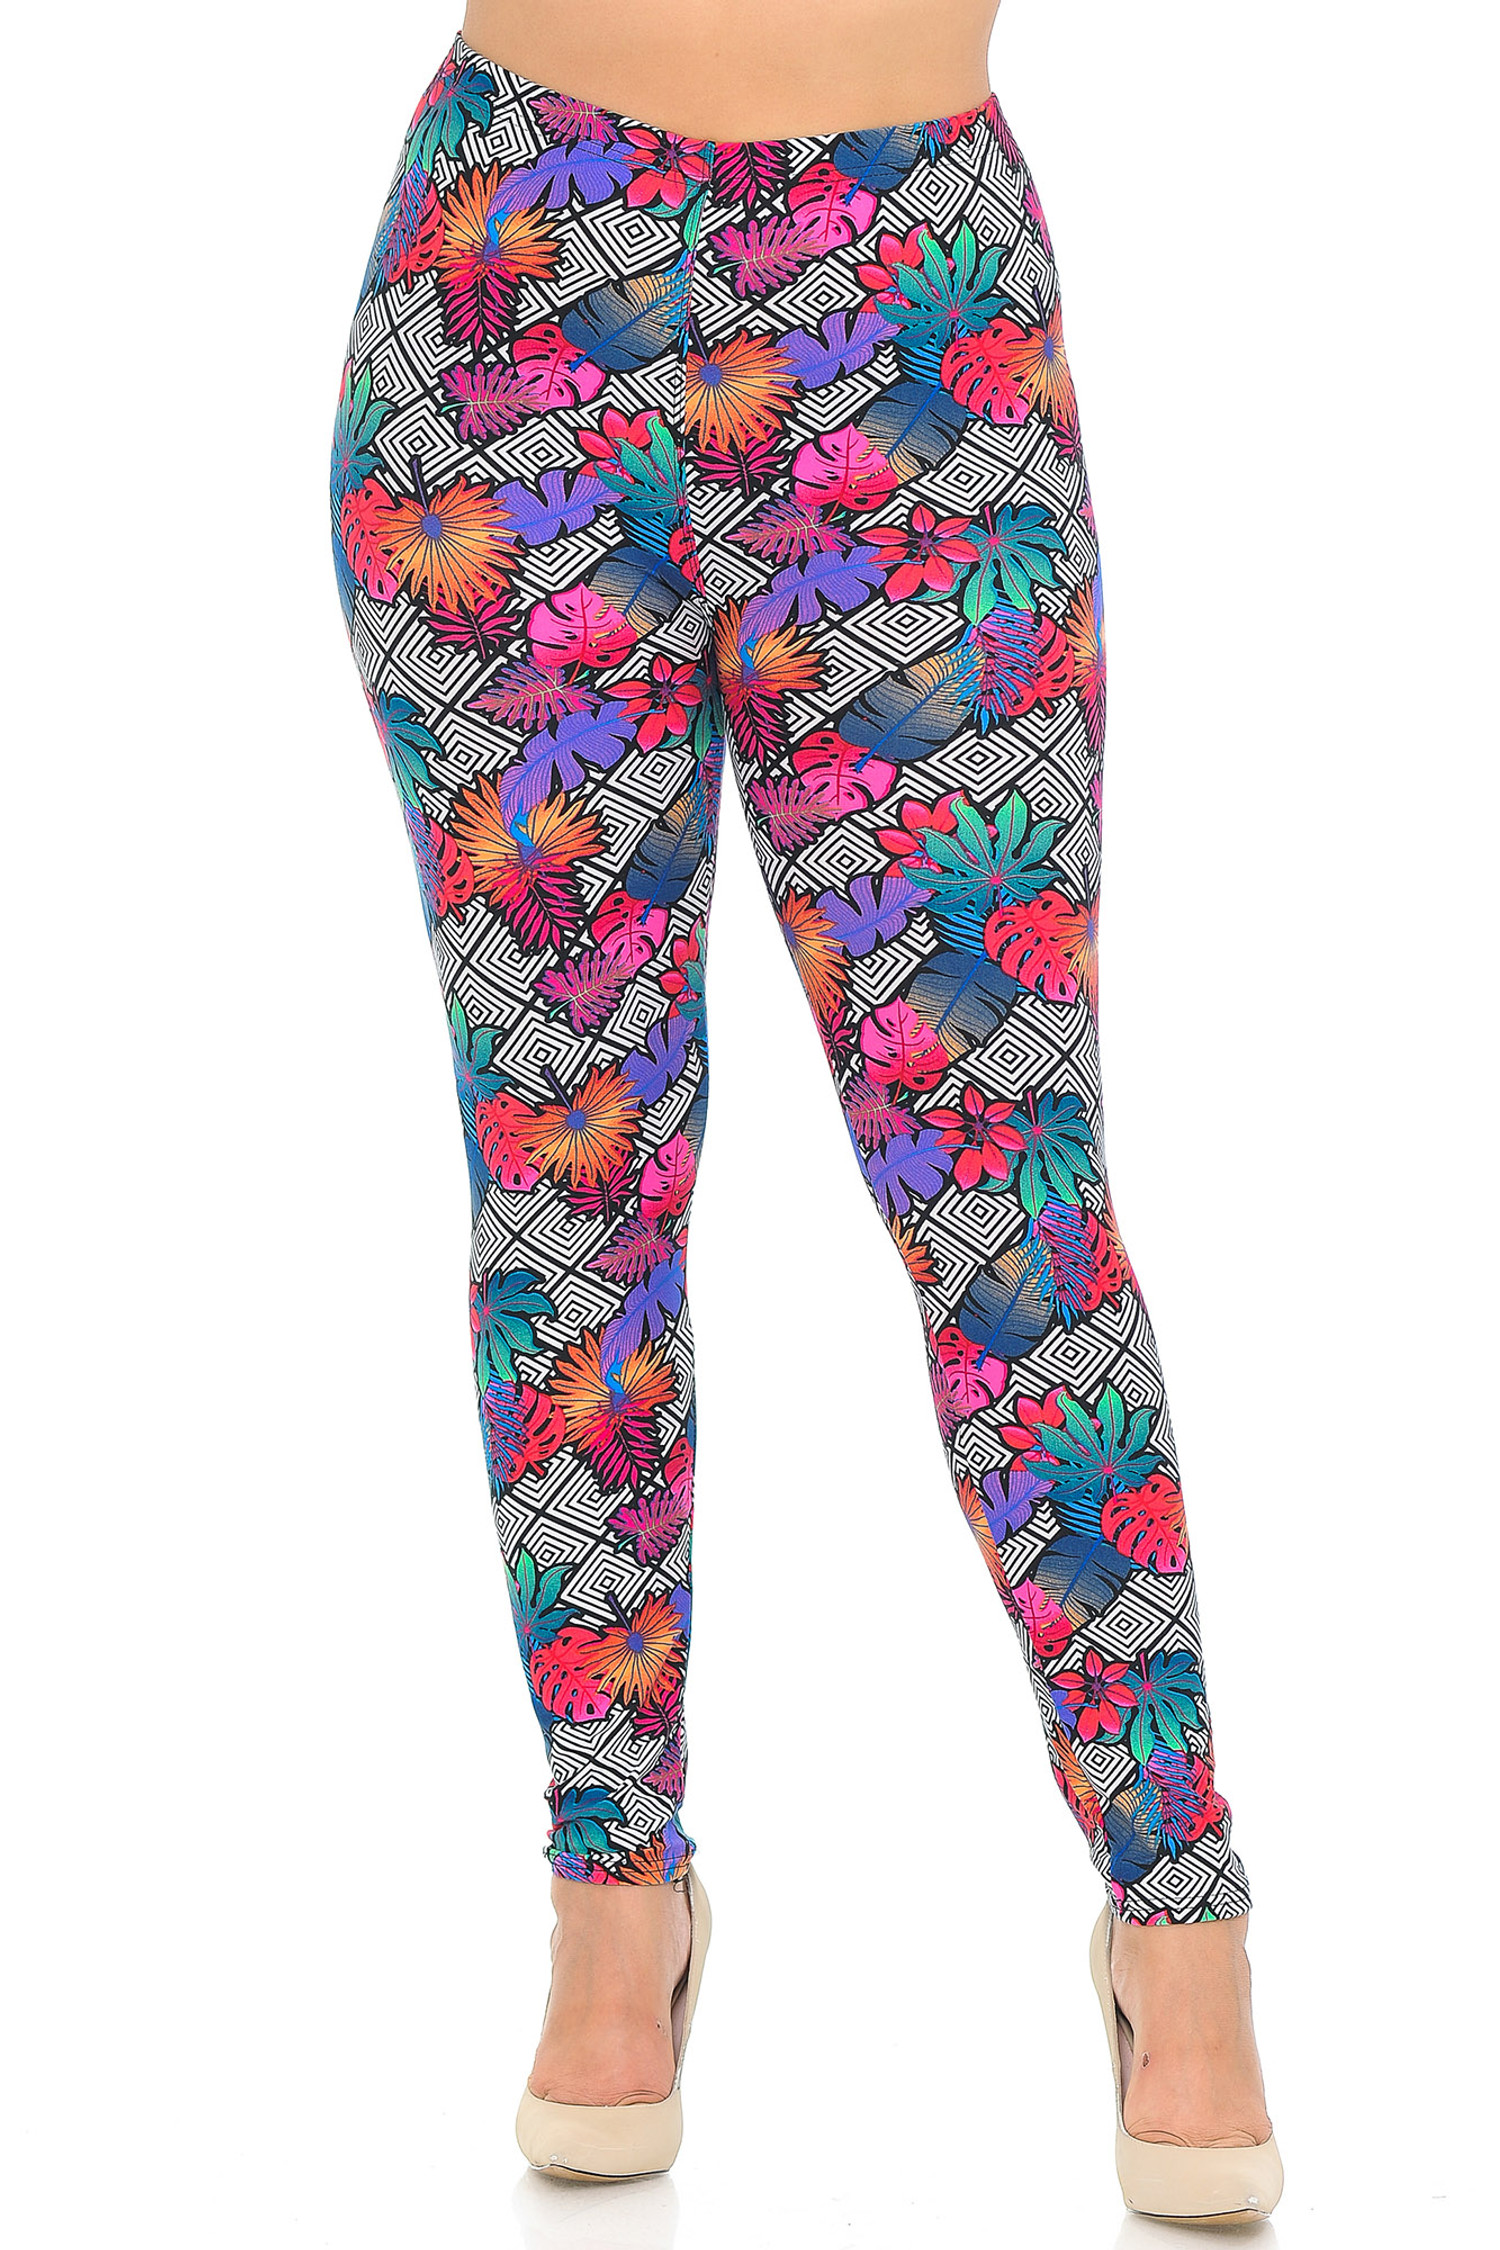 Soft Brushed Rainbow Foliage Extra Plus Size Leggings - 3X-5X